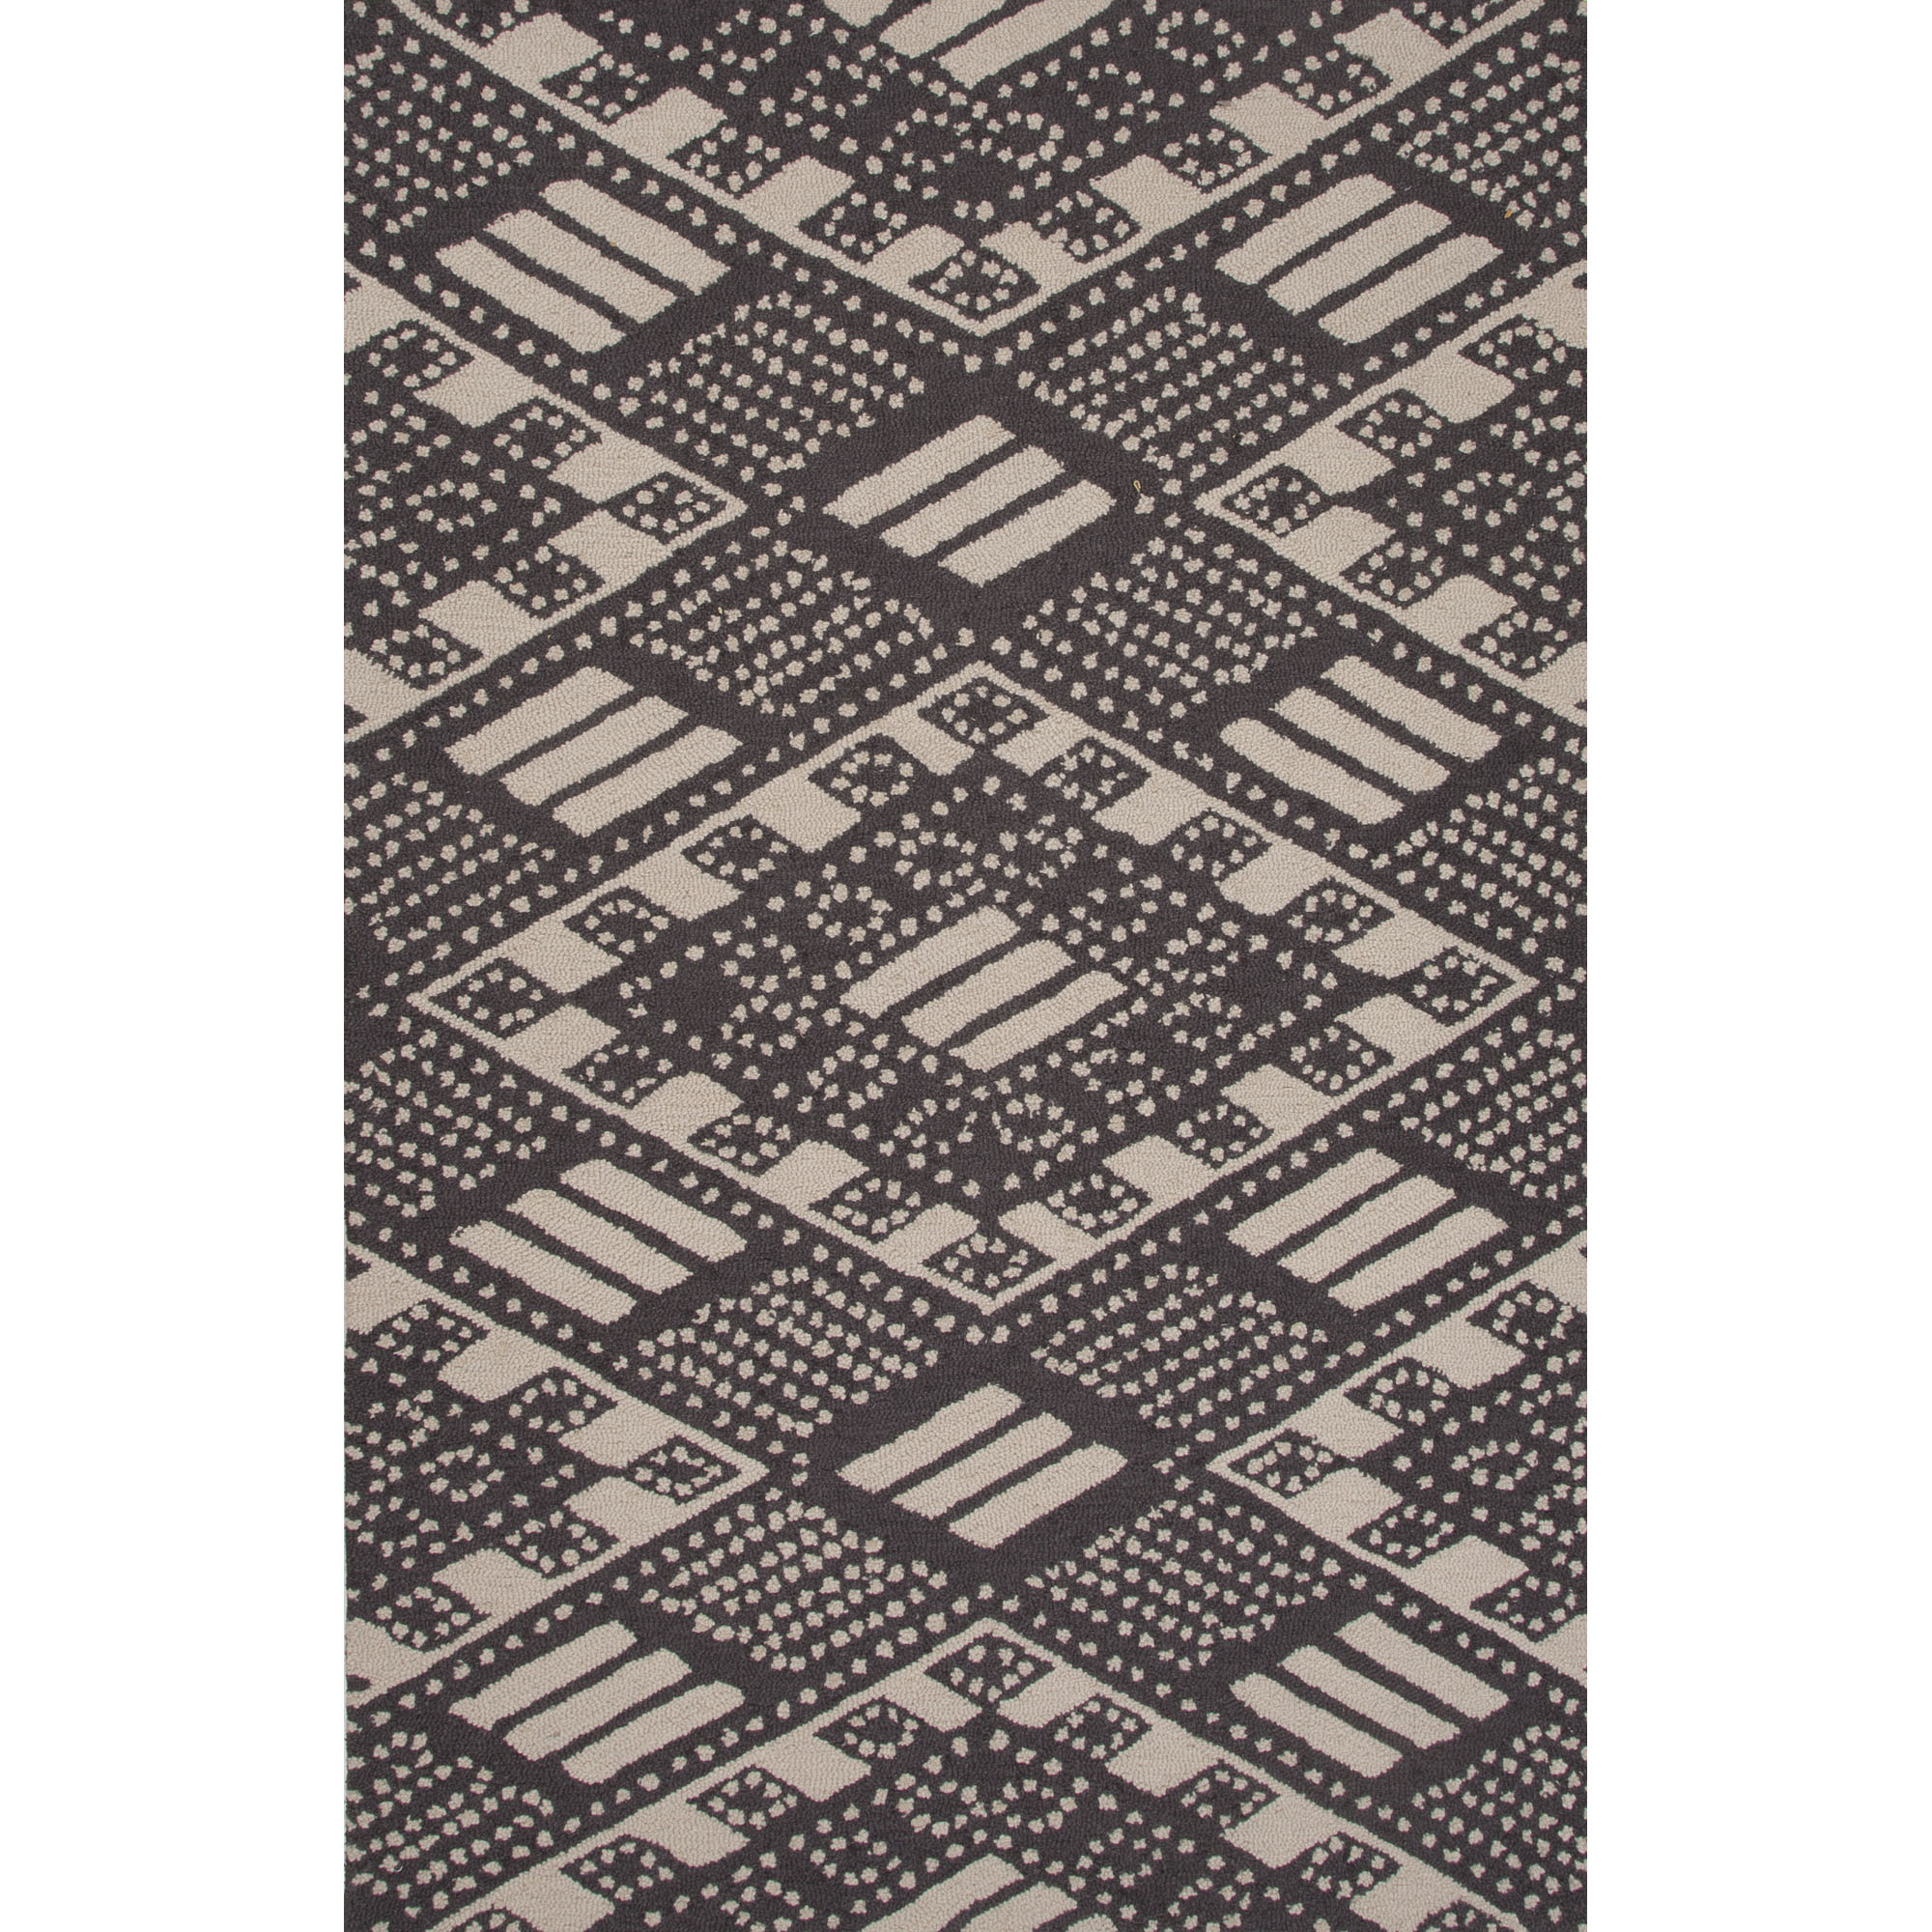 JAIPUR Rugs Traditions Made Modern Tufted 5 x 8 Rug - Item Number: RUG121391